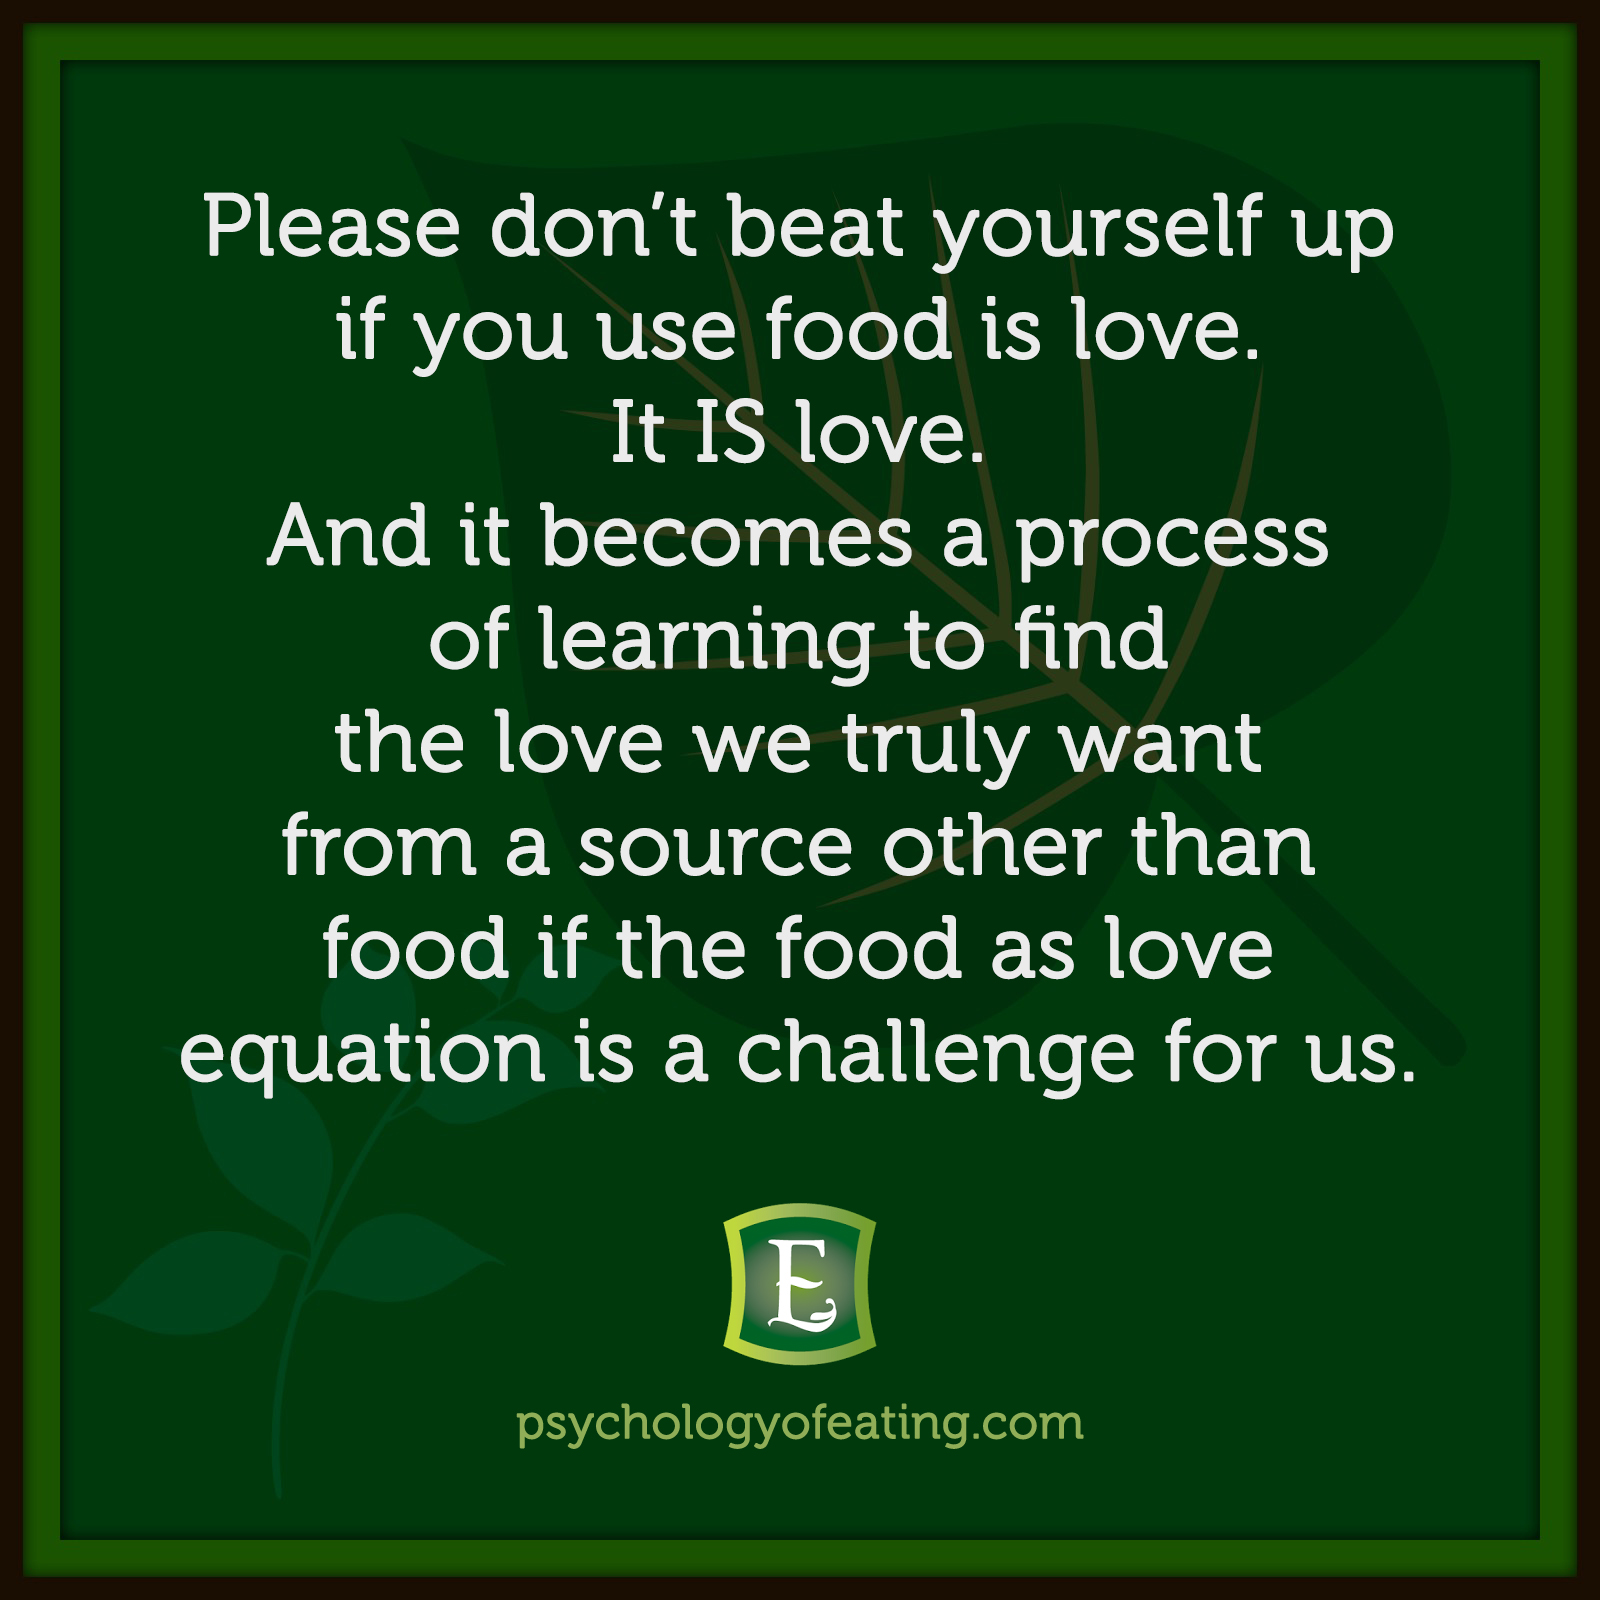 Please don't beat yourself up if you use food is love. It IS love. And it becomes a process of learning to find the love we truly want from a source other than food if the food as love equation is a challenge for us.. #health #nutrition #eatingpsychology #IPE